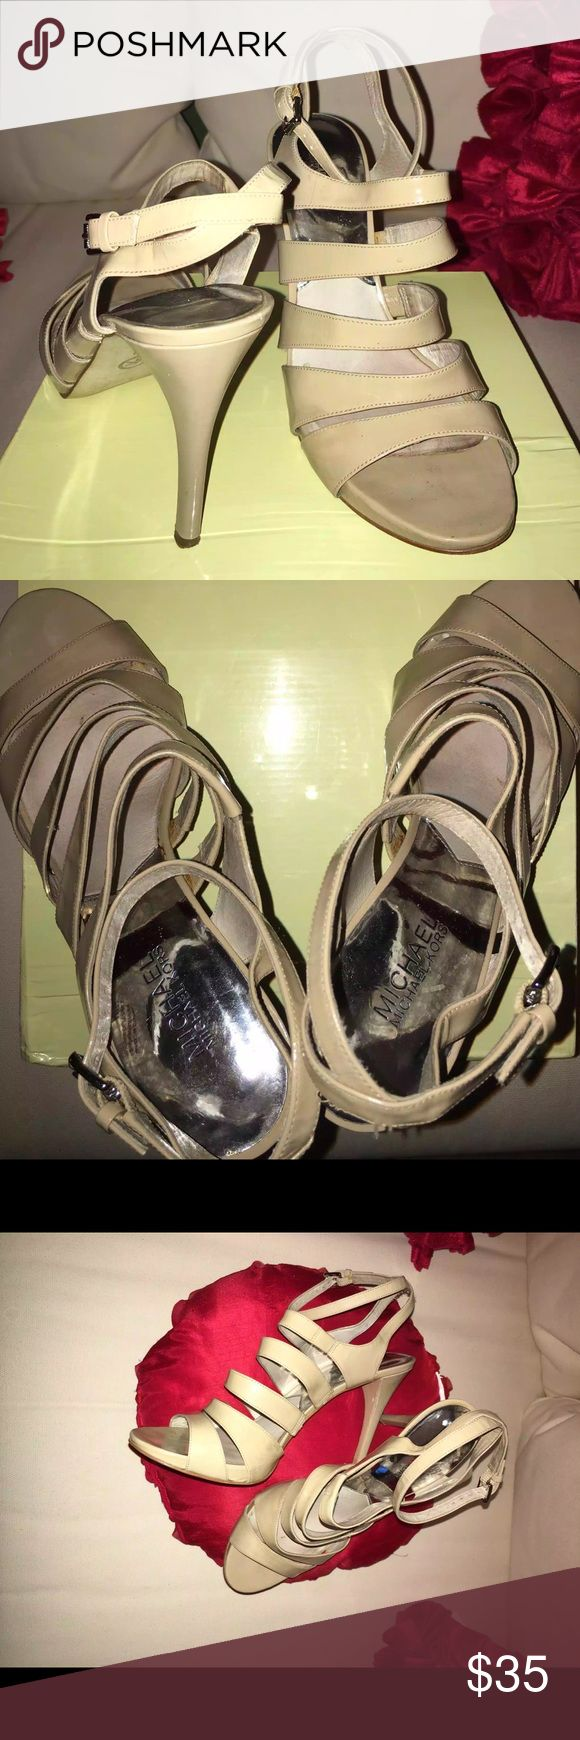 Michael Kors Nude Patent Leather Sandal Size 10 Michael Kors Nude Patent Leather Strappy Sandal Women's Size 10. Every girl needs to go Nude sometimes! The perfect shoe for cuffing season! Shop & be Merry! Michael Kors Shoes Sandals